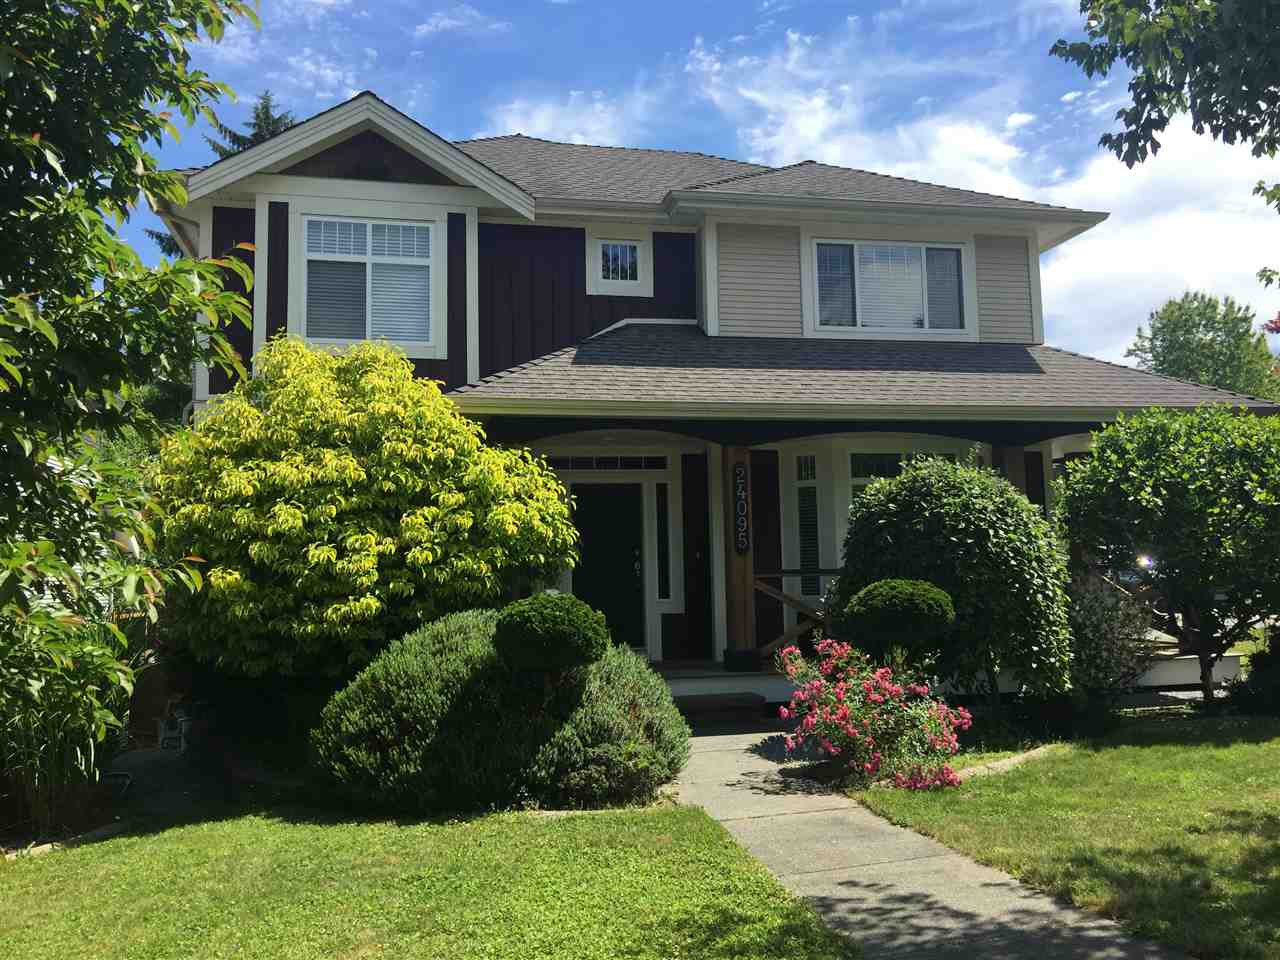 Detached at 24095 MCCLURE DRIVE, Maple Ridge, British Columbia. Image 1